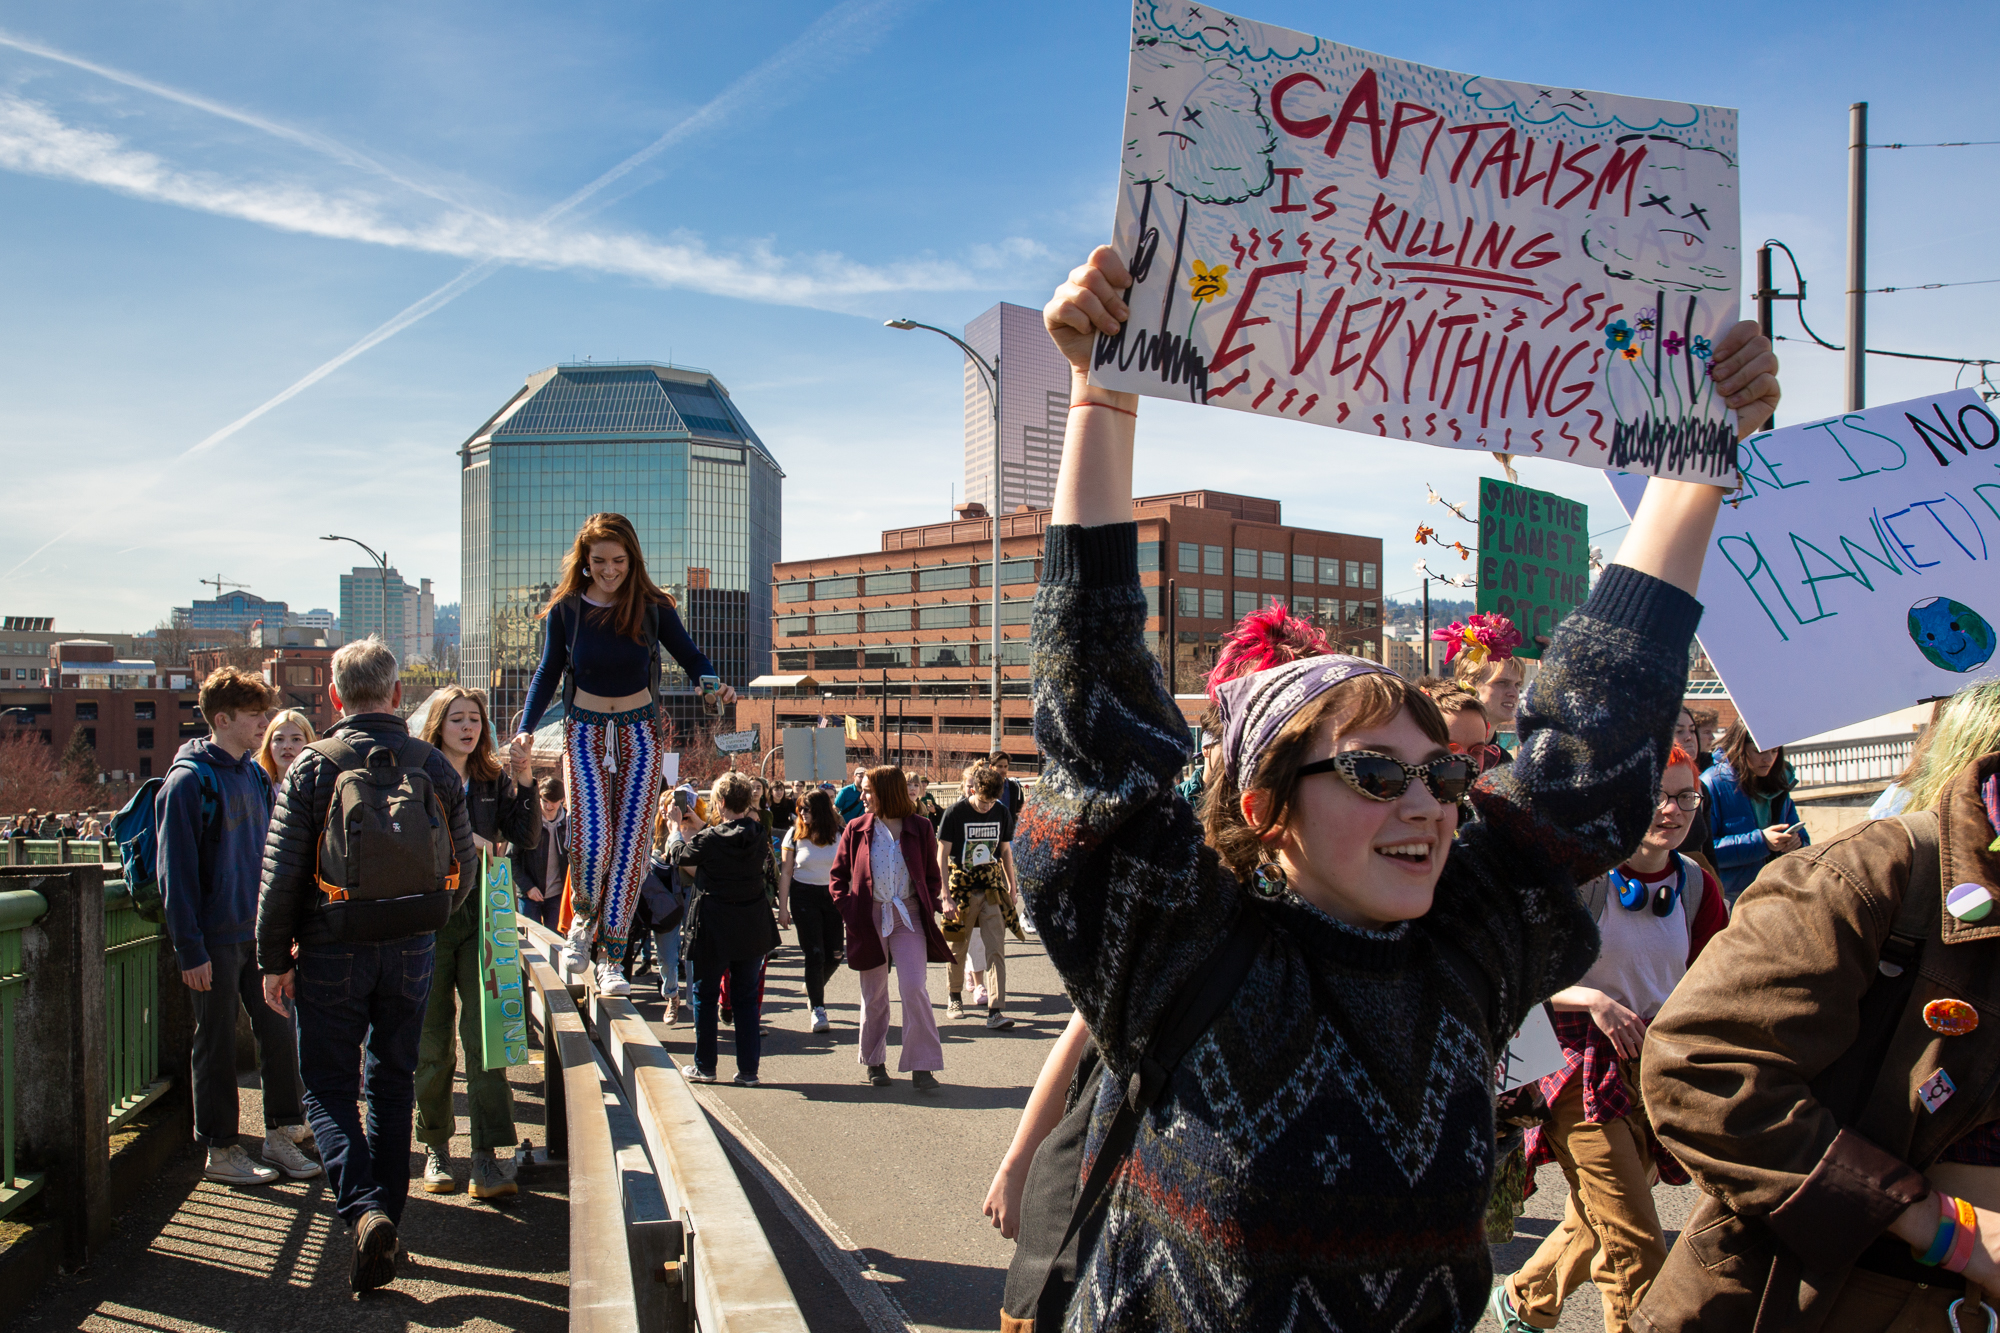 Students march for action against climate change in Northwest Portland on Friday, March 15, 2019. An estimated 1,500 to 2,000 Portland students took the day off to join the Global Climate Strike.